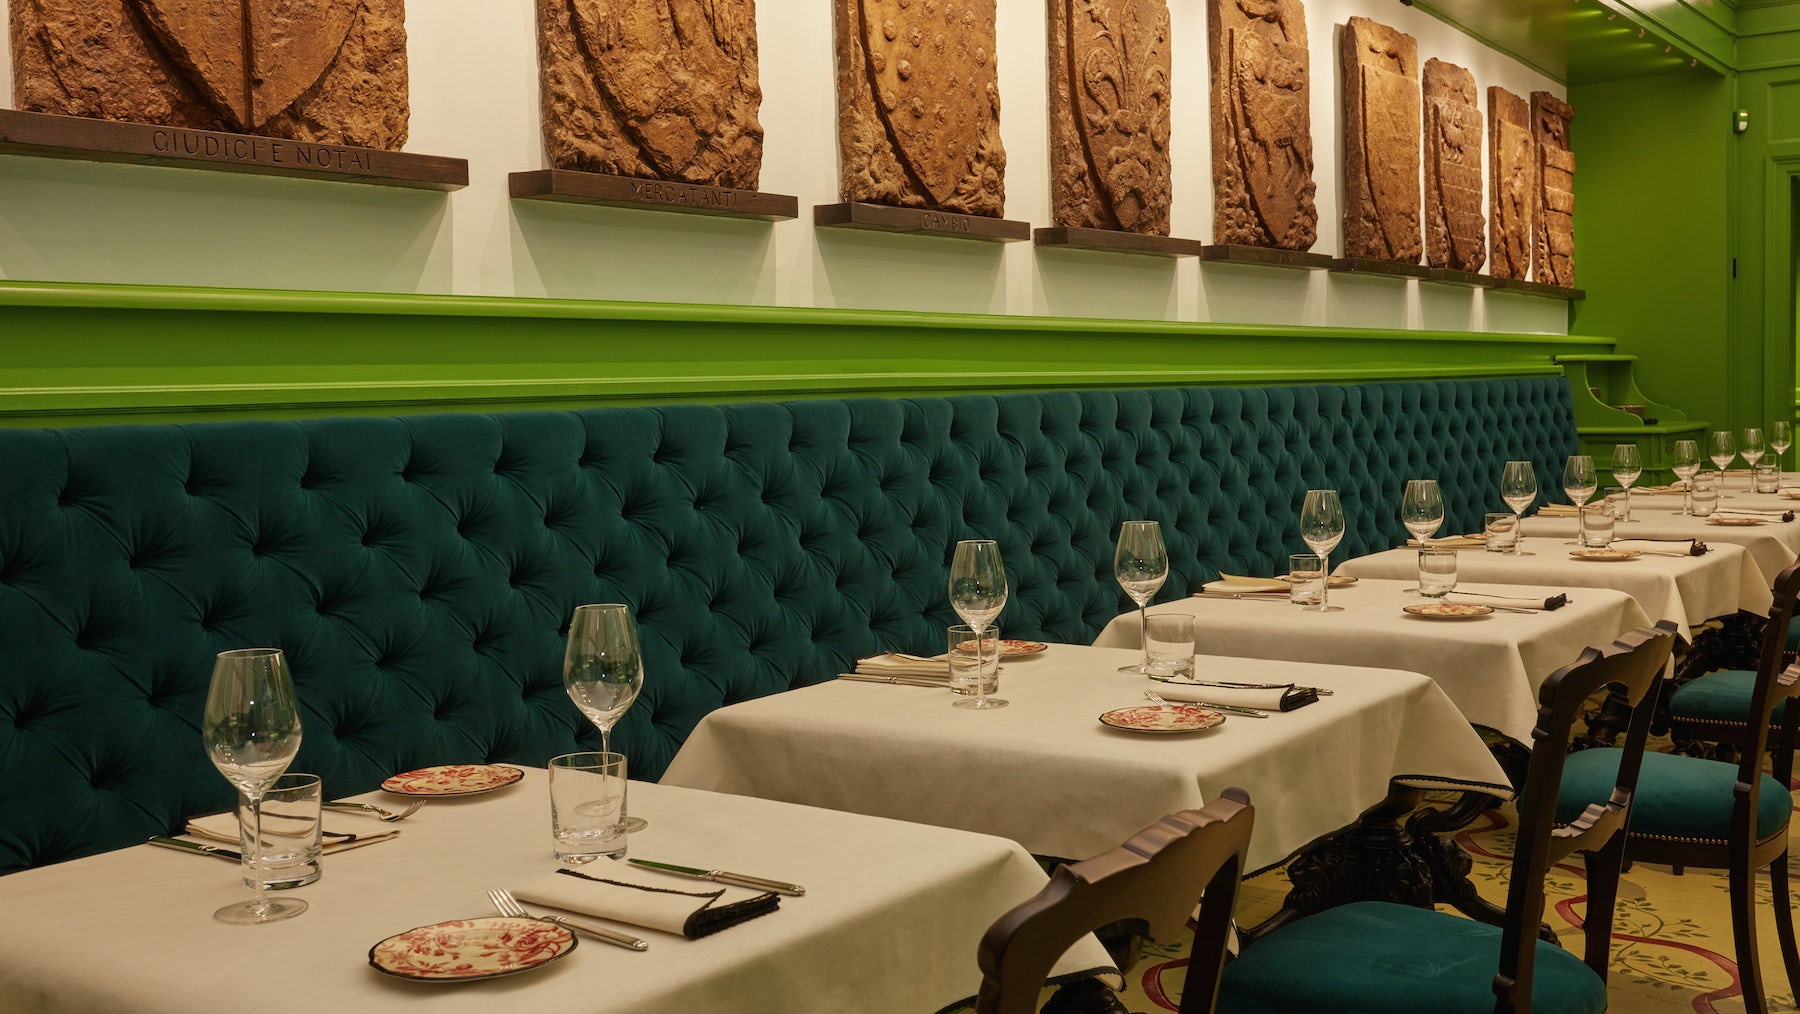 Gucci Opens Fine Dining Restaurant